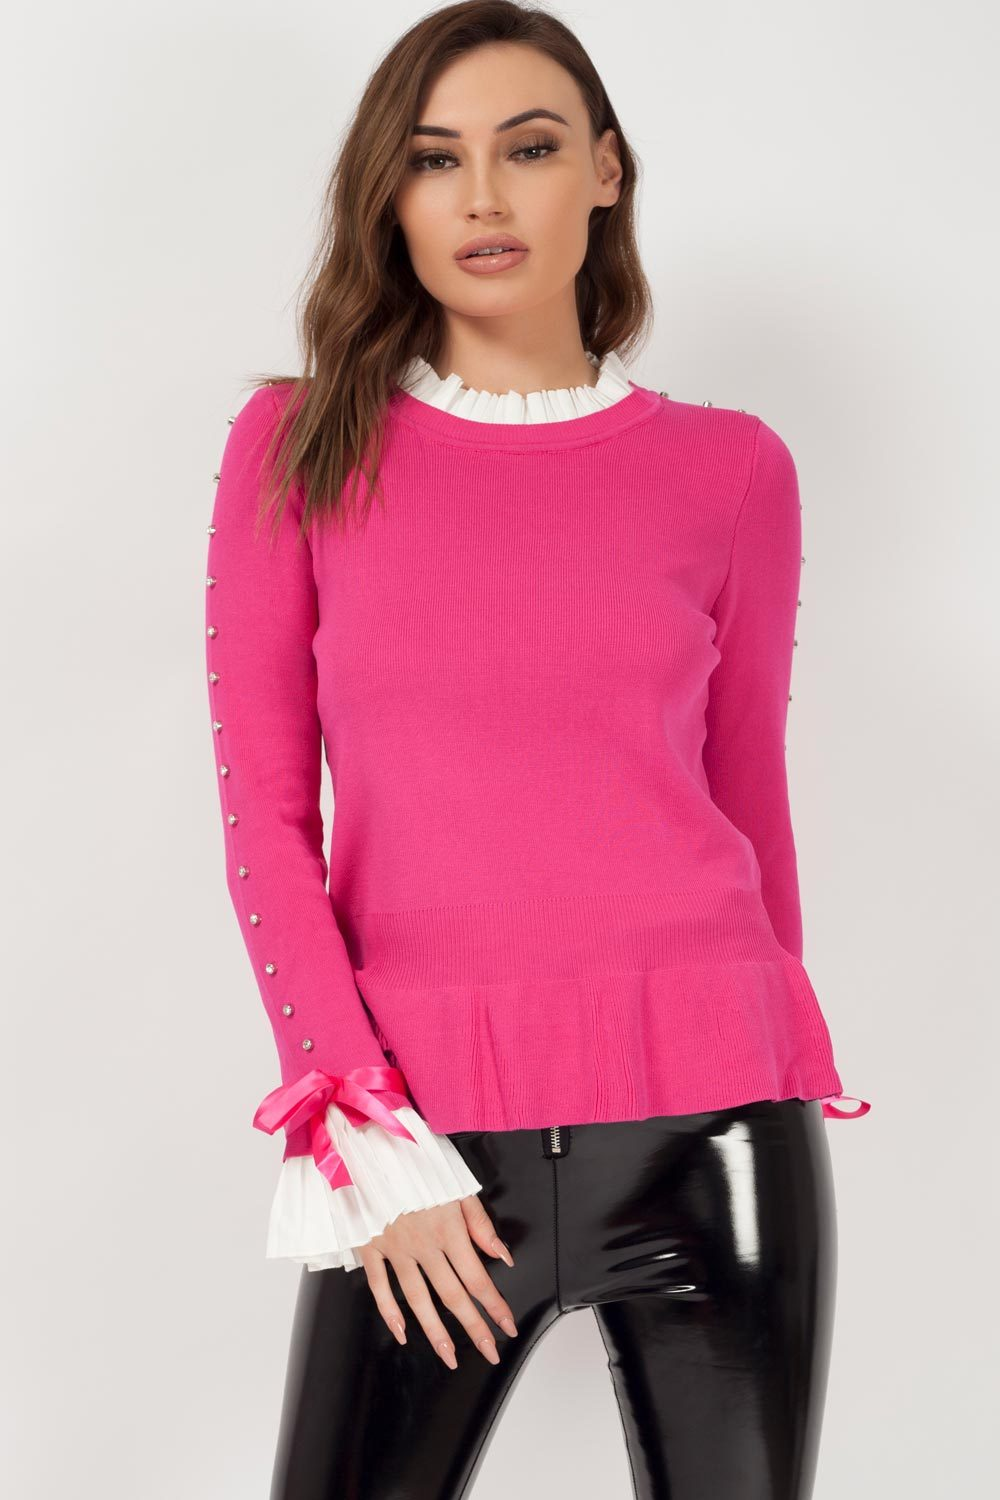 jumper with bow detail pink uk